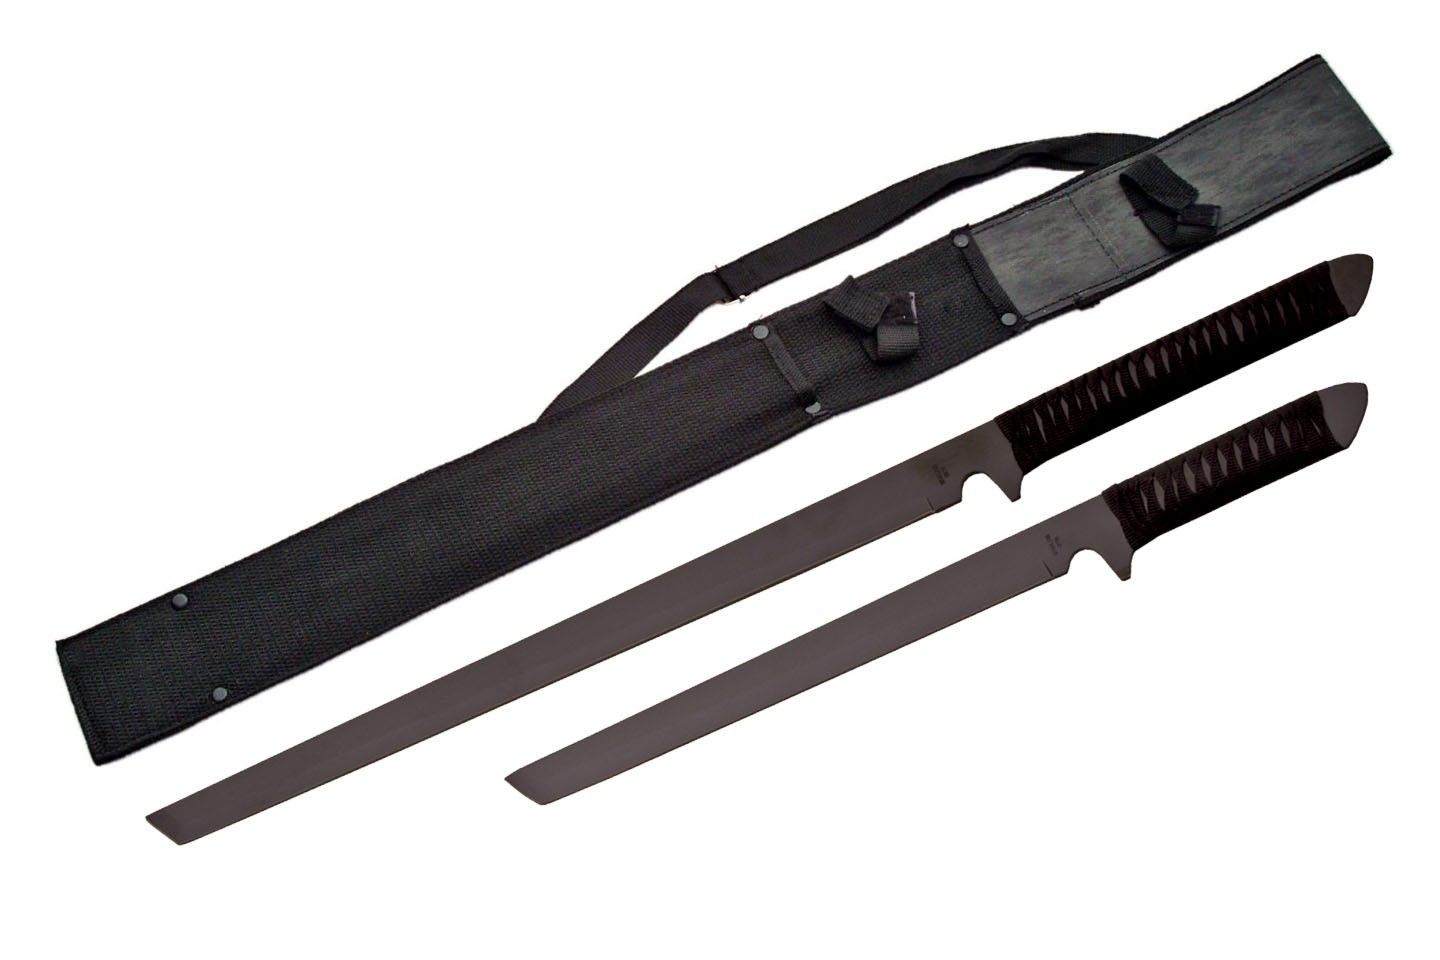 BLACK 2 PCS NINJA SWORD SET